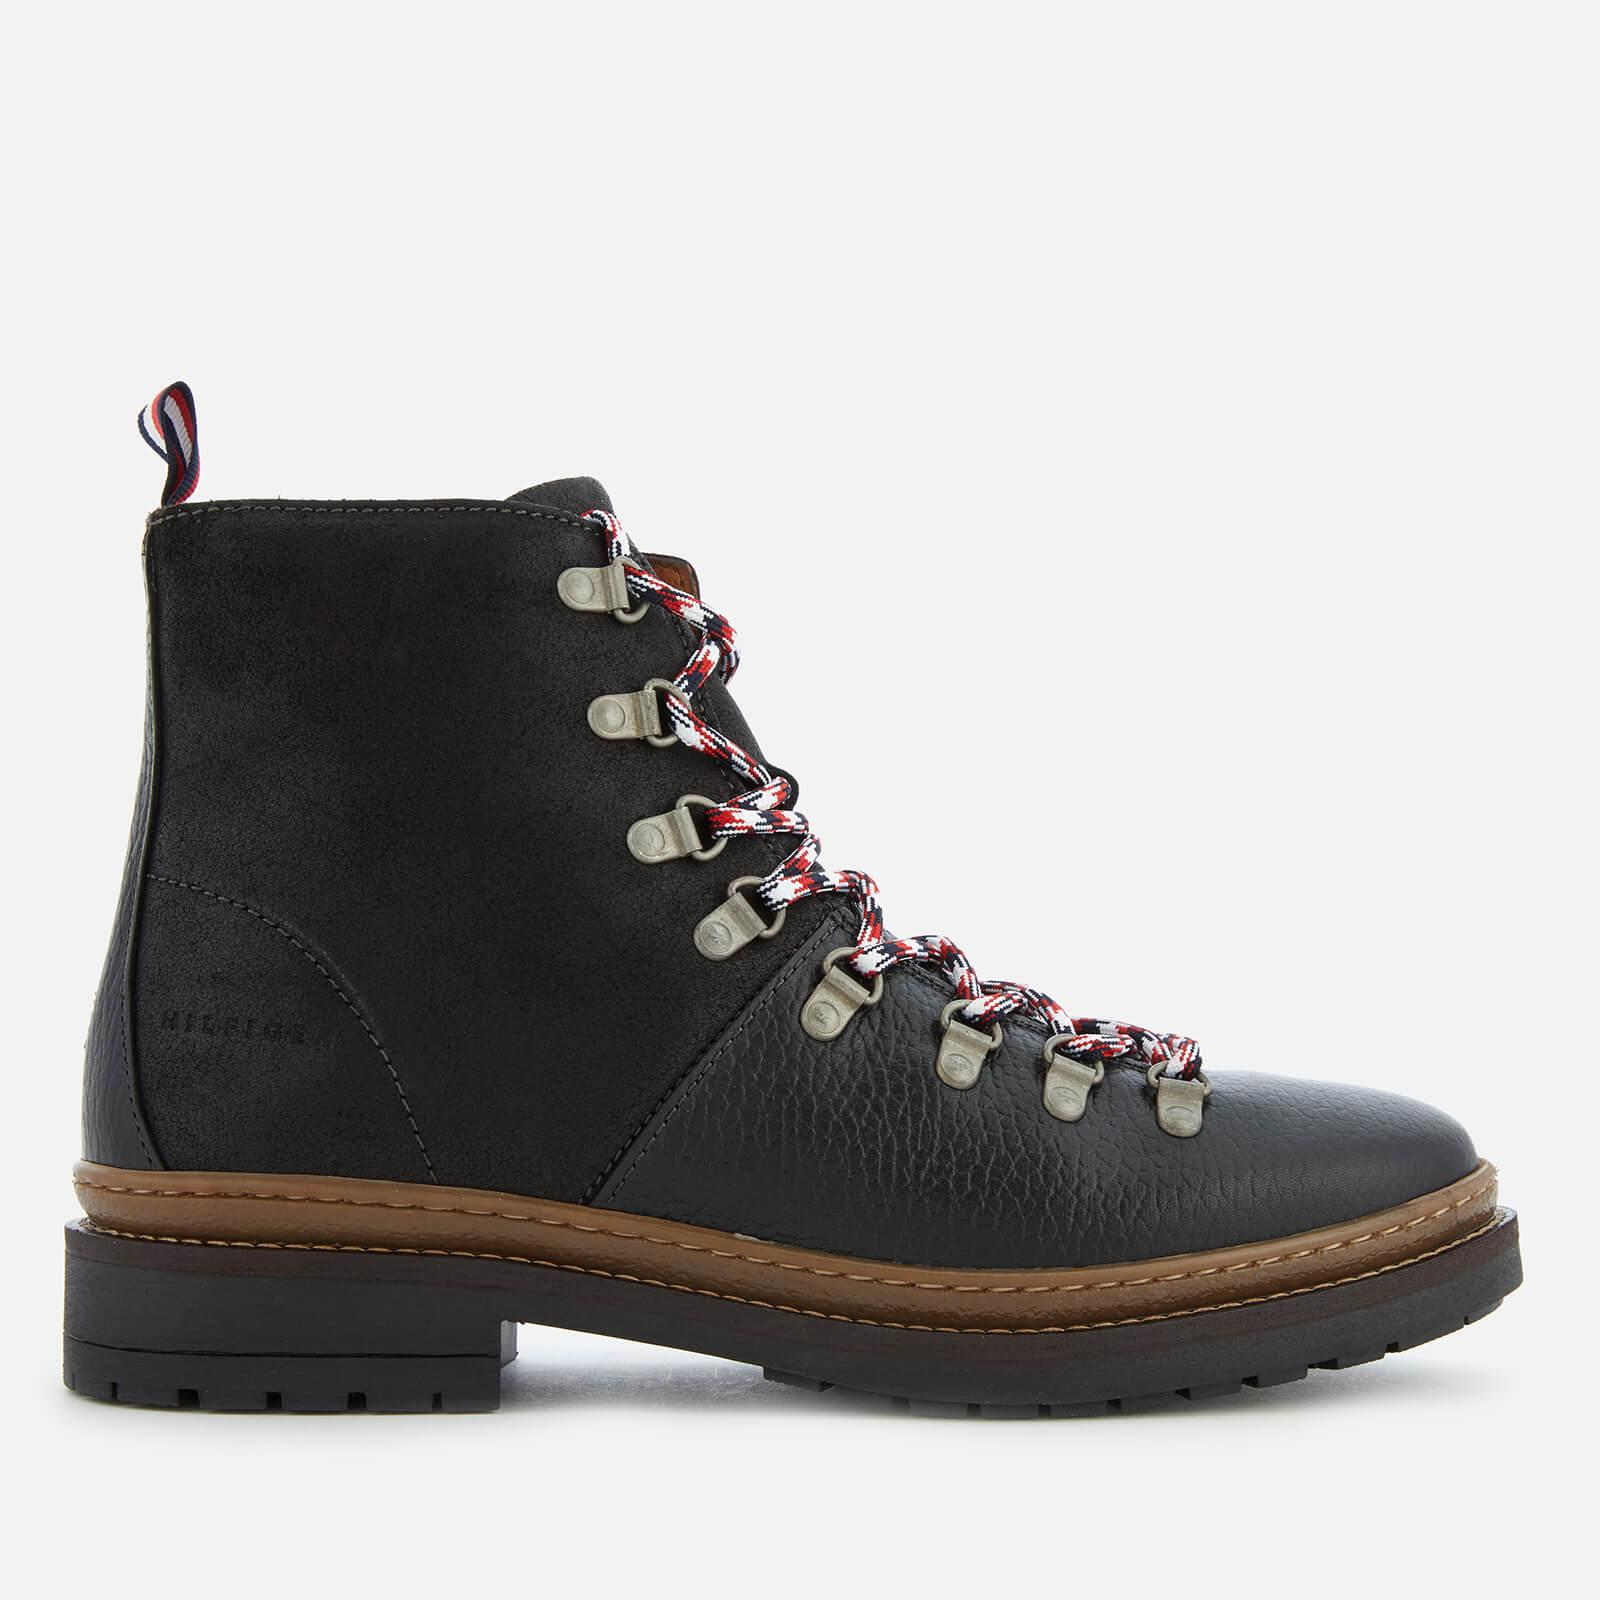 1fc06da85 Tommy Hilfiger Elevated Outdoor Leather Hiking Boots in Black for ...